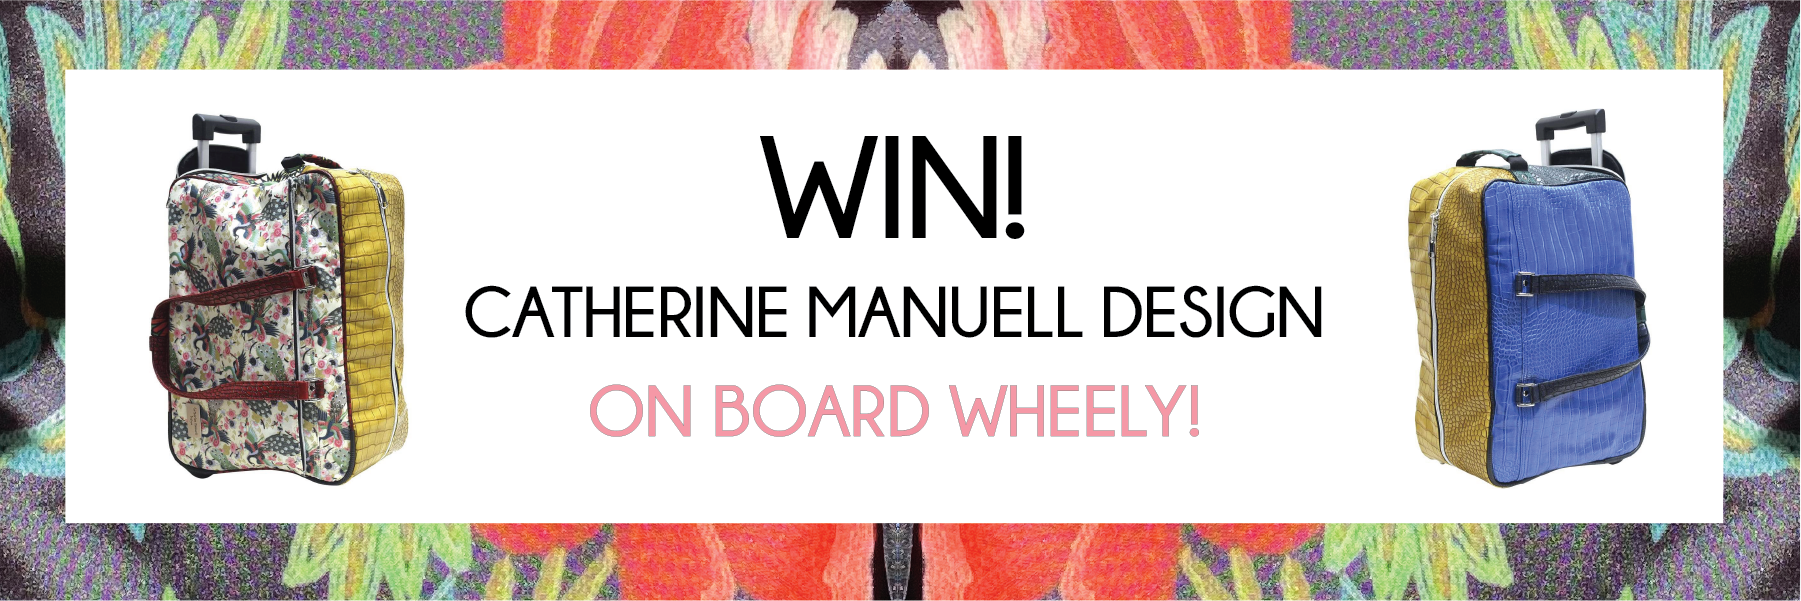 WWIN A CATHERINE MANUELL DESIGN ON BOARD WHEELY!